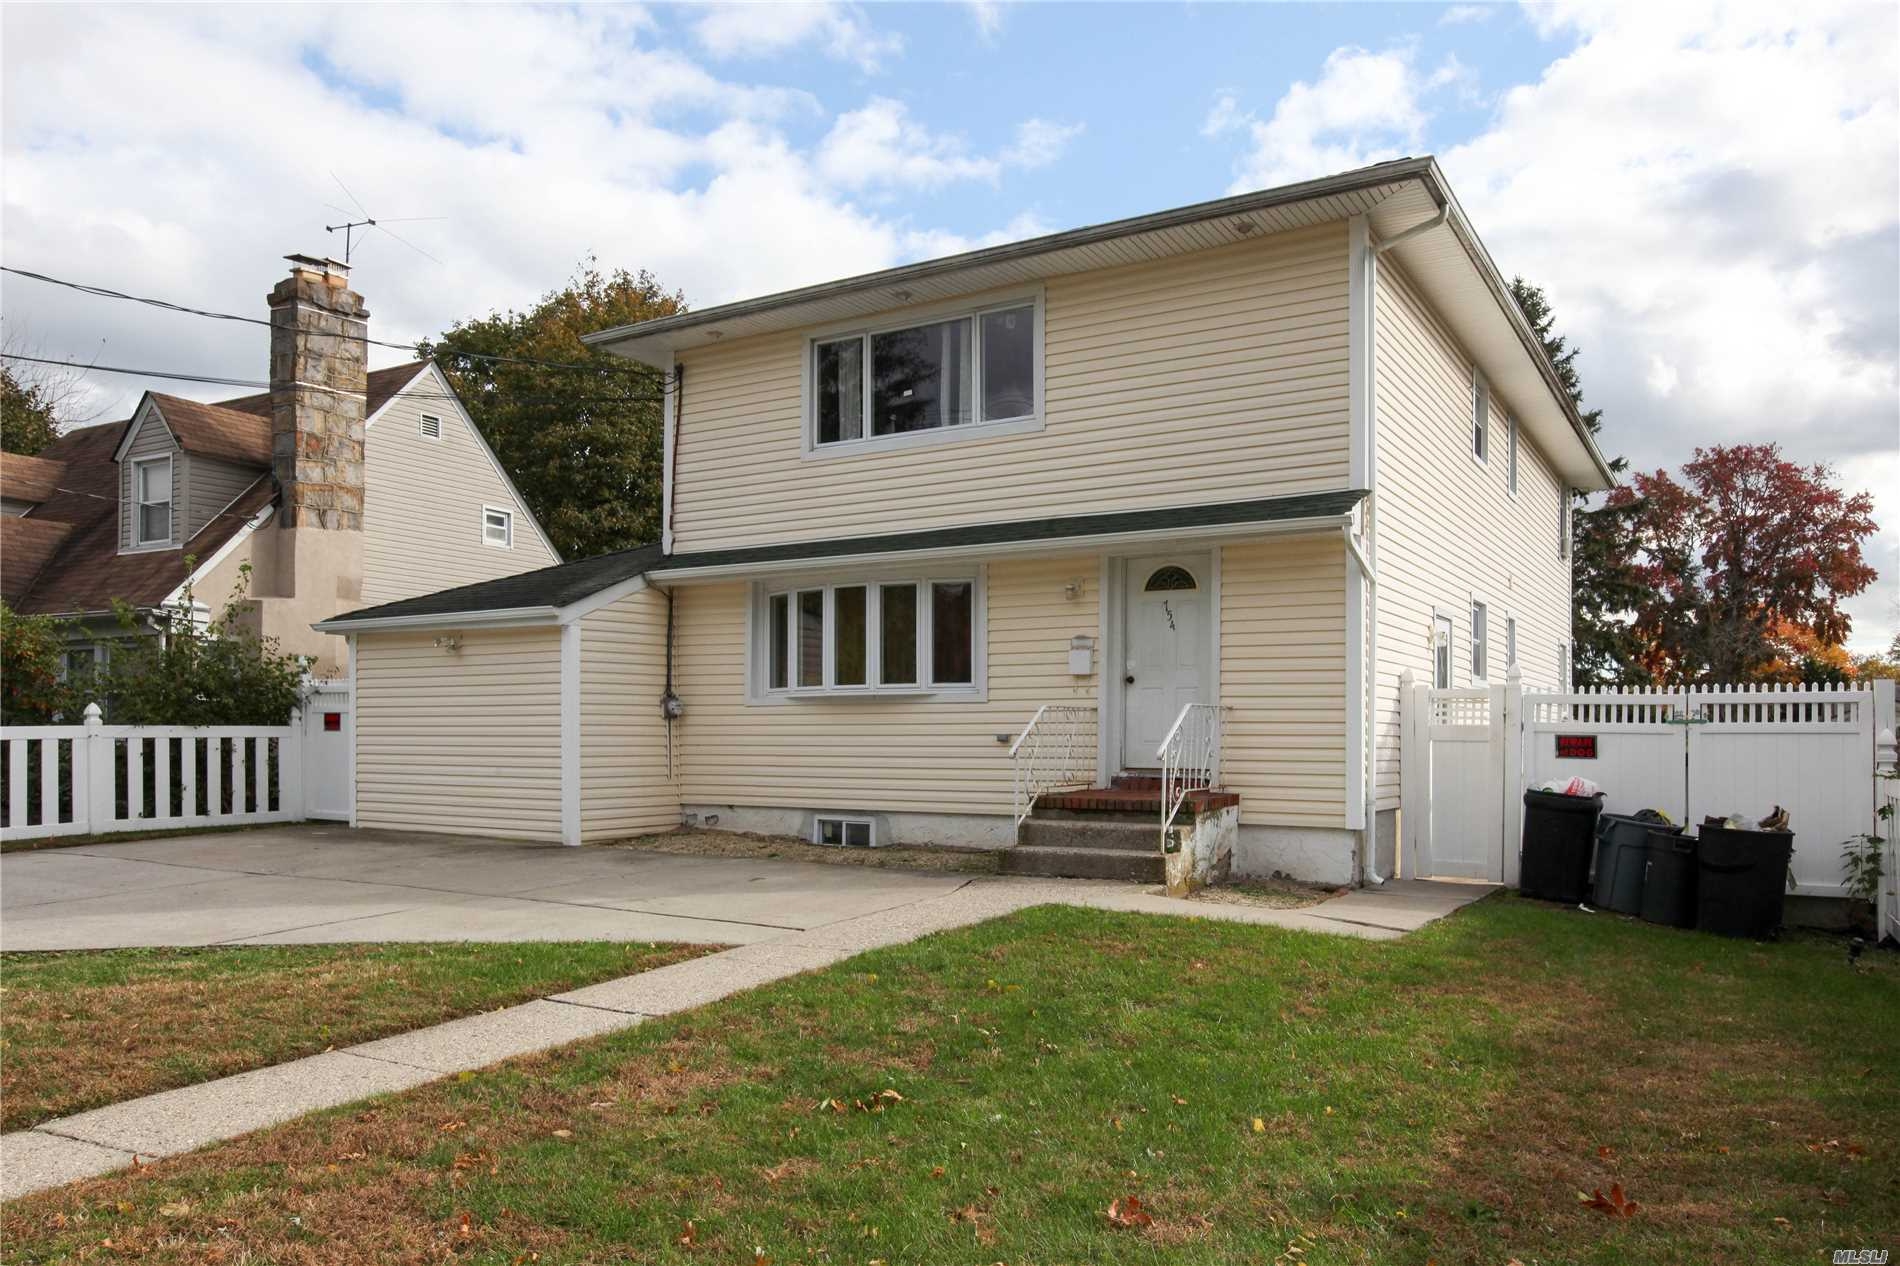 Large House With 6 Bedrooms, 2 Kitchens And 2.5 Bathrooms In The Heart Of Uniondale. Close To Shopping Centers And Public Transportation. Gas Heat, Large Yard.